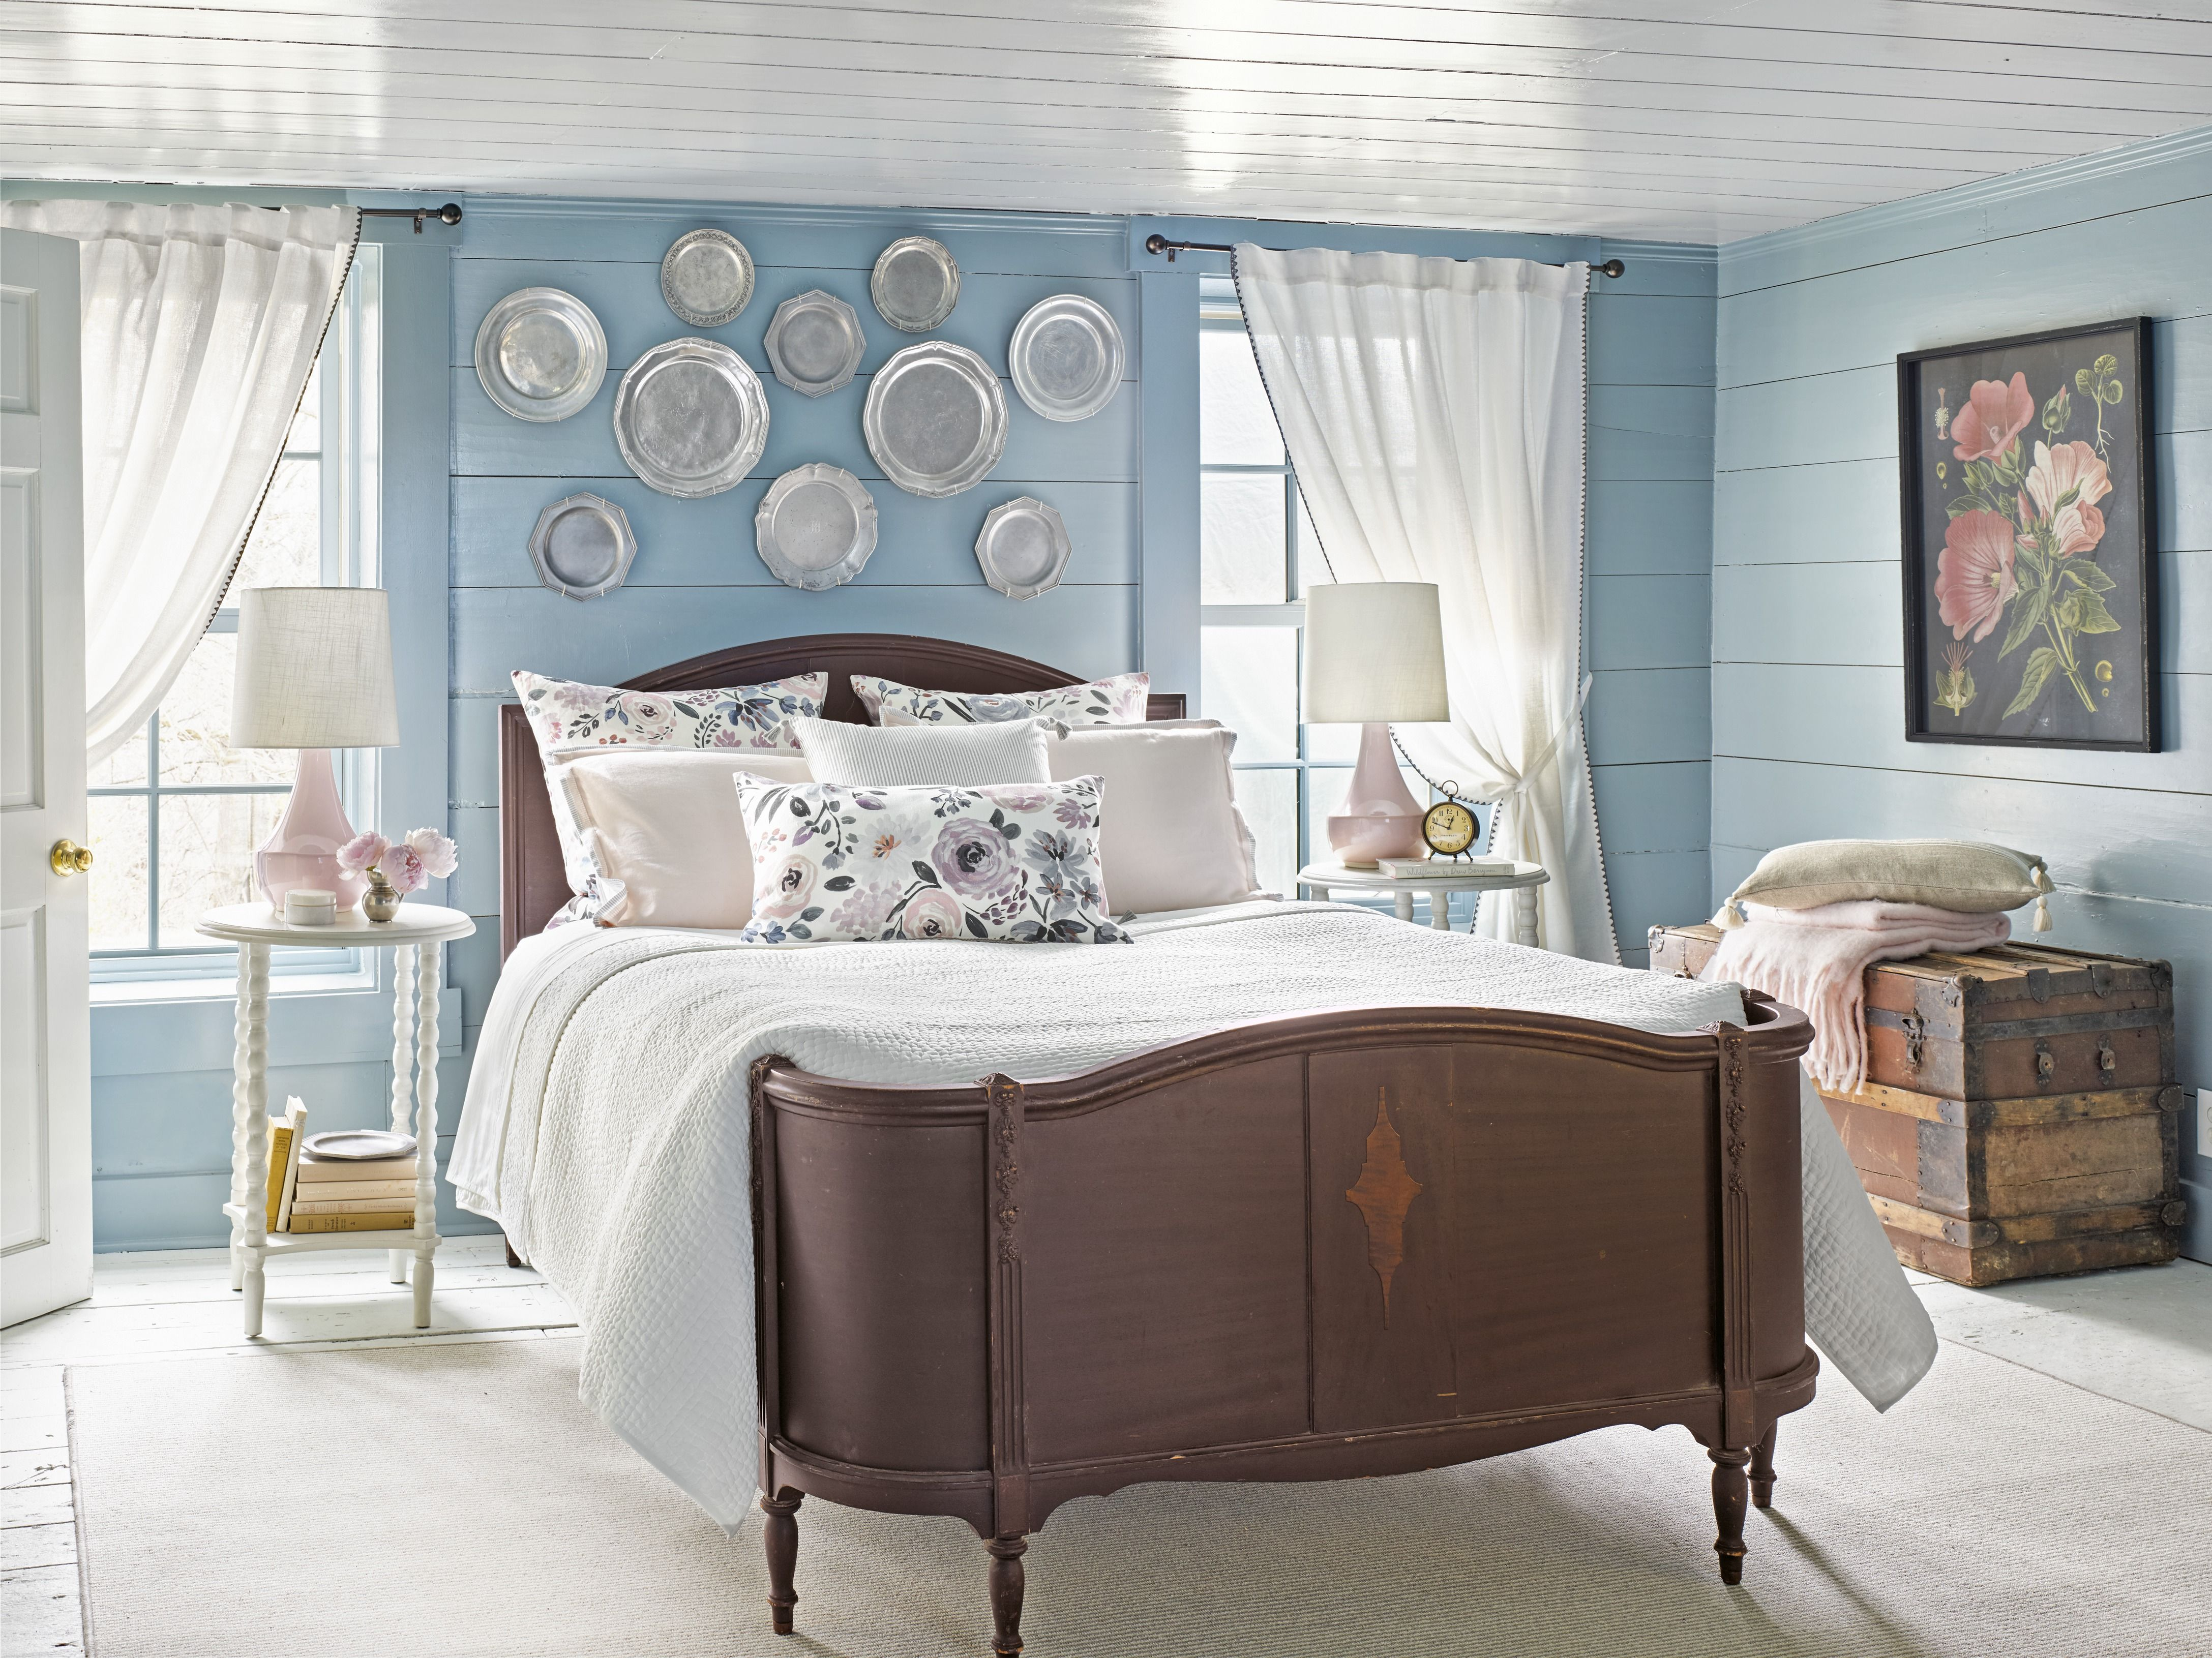 27 Best Paint Colors for Small Rooms - Painting Small Rooms on Good Bedroom Ideas For Small Rooms  id=72569